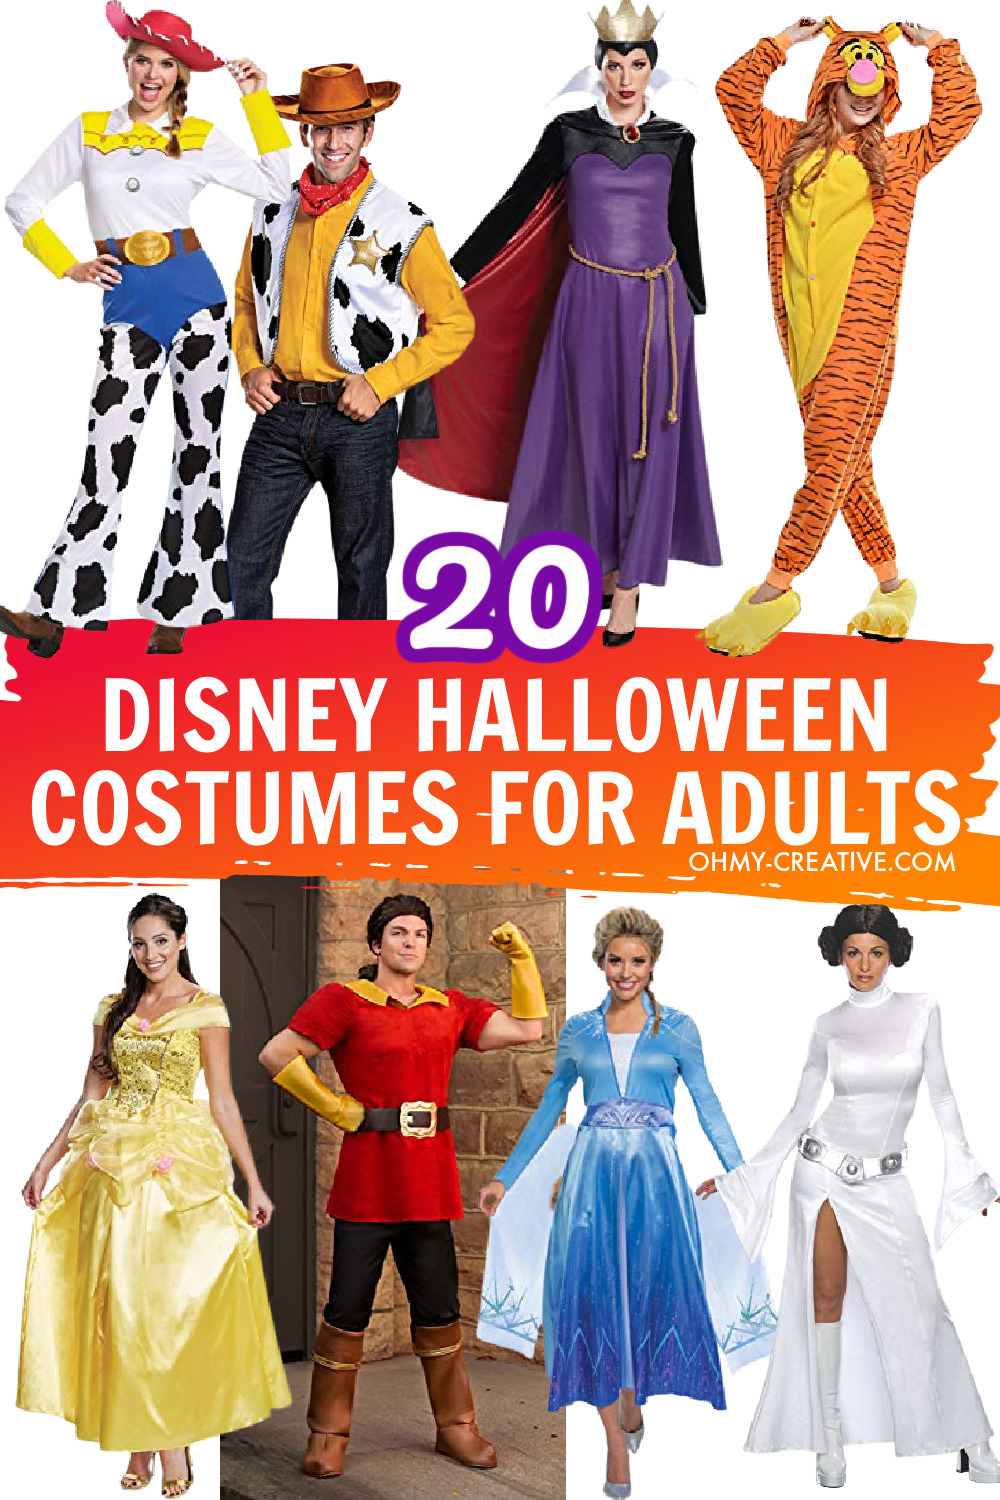 20 Disney Halloween Costumes For Adults